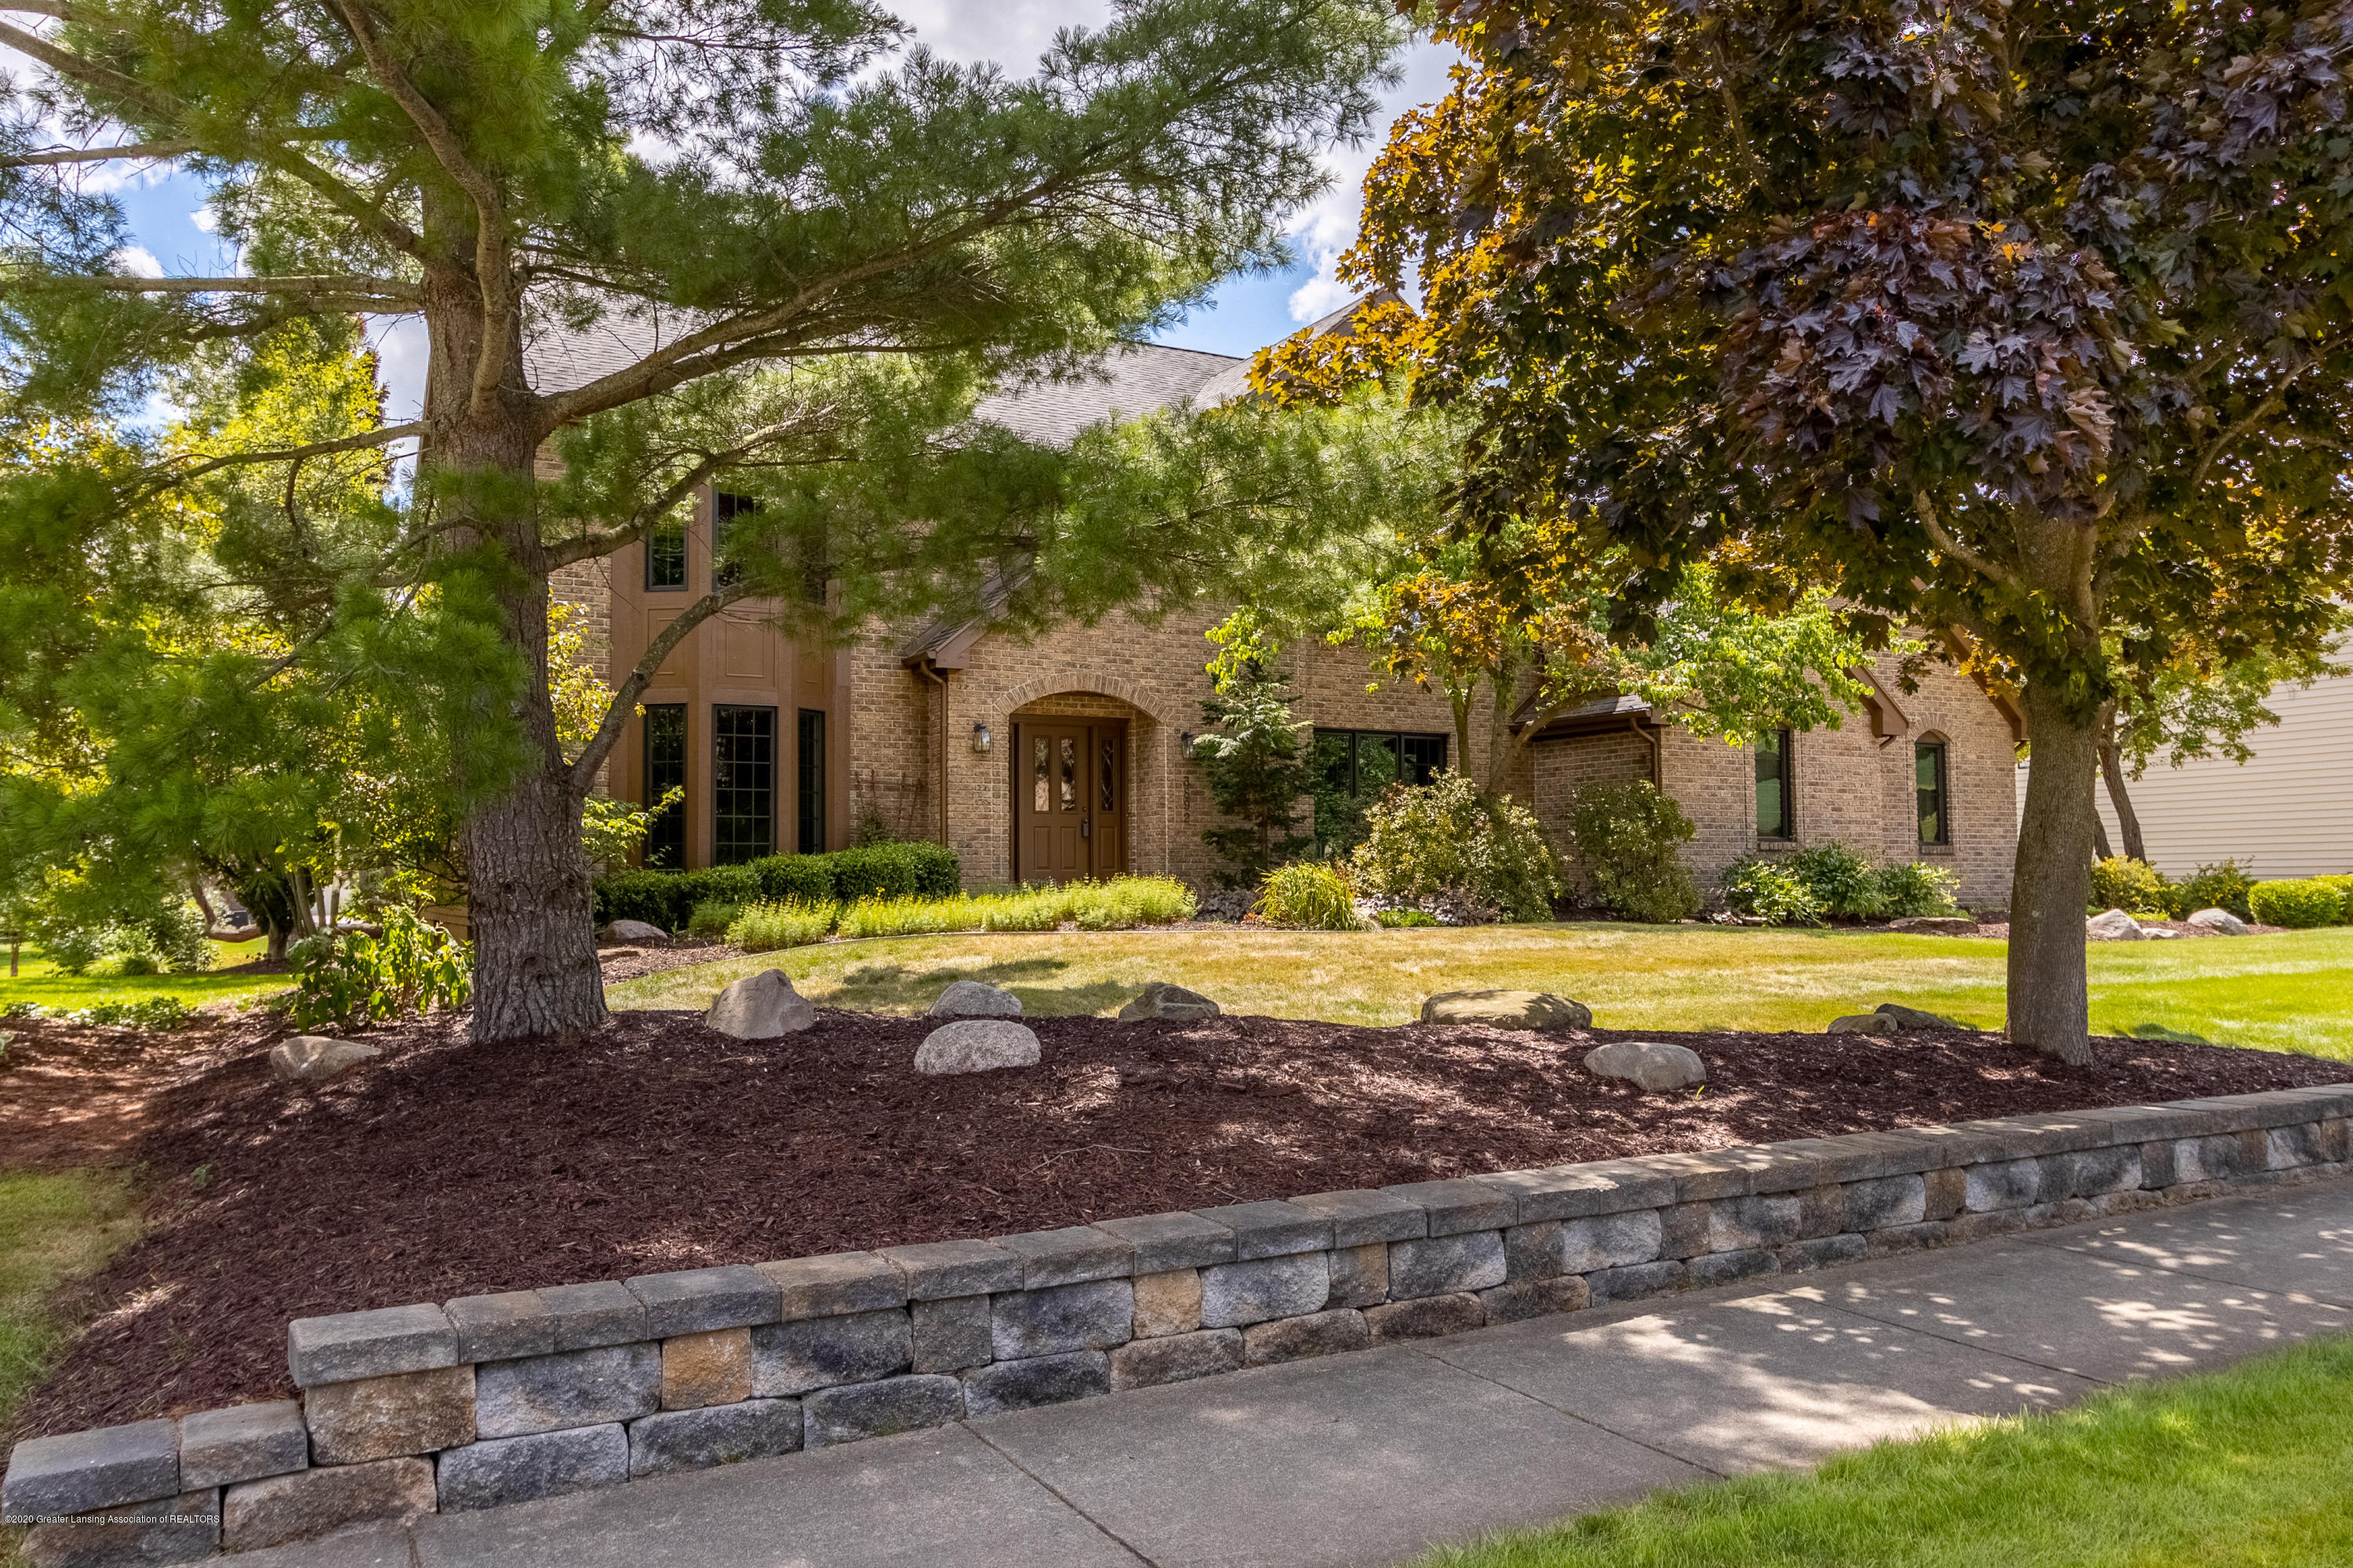 3892 Crooked Creek Rd - Street View - 2